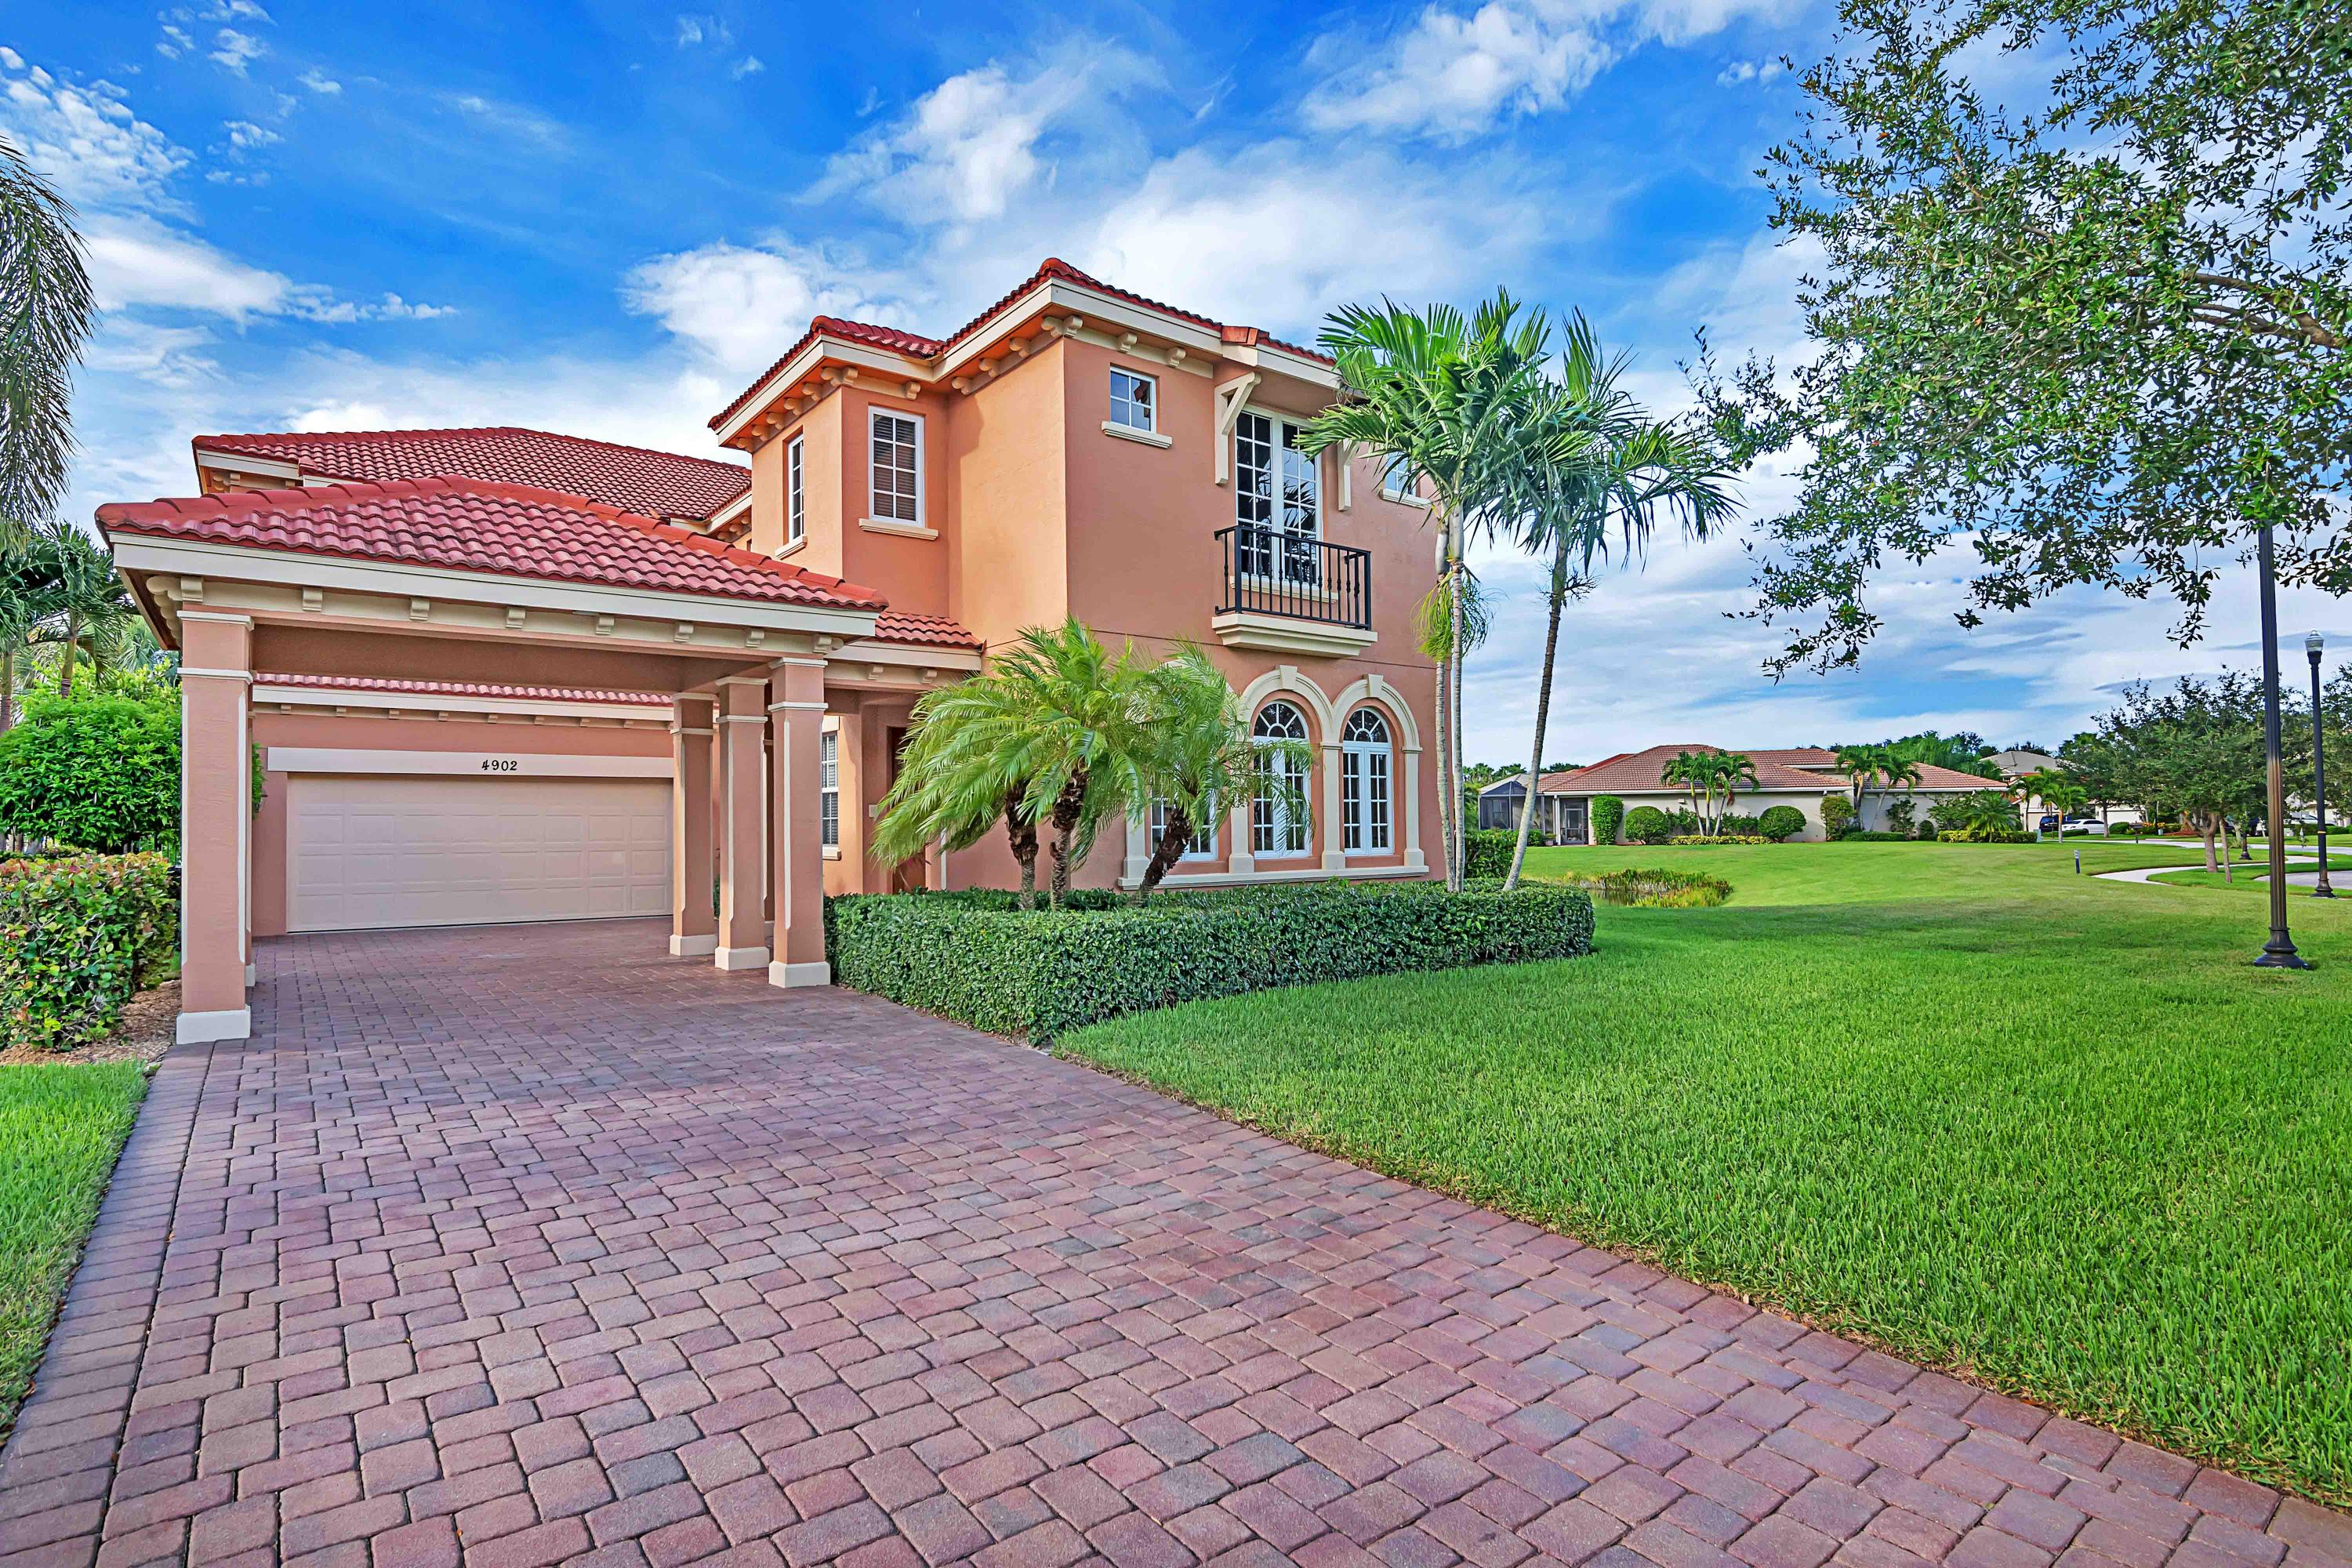 Home for sale in Paloma Palm Beach Gardens Florida